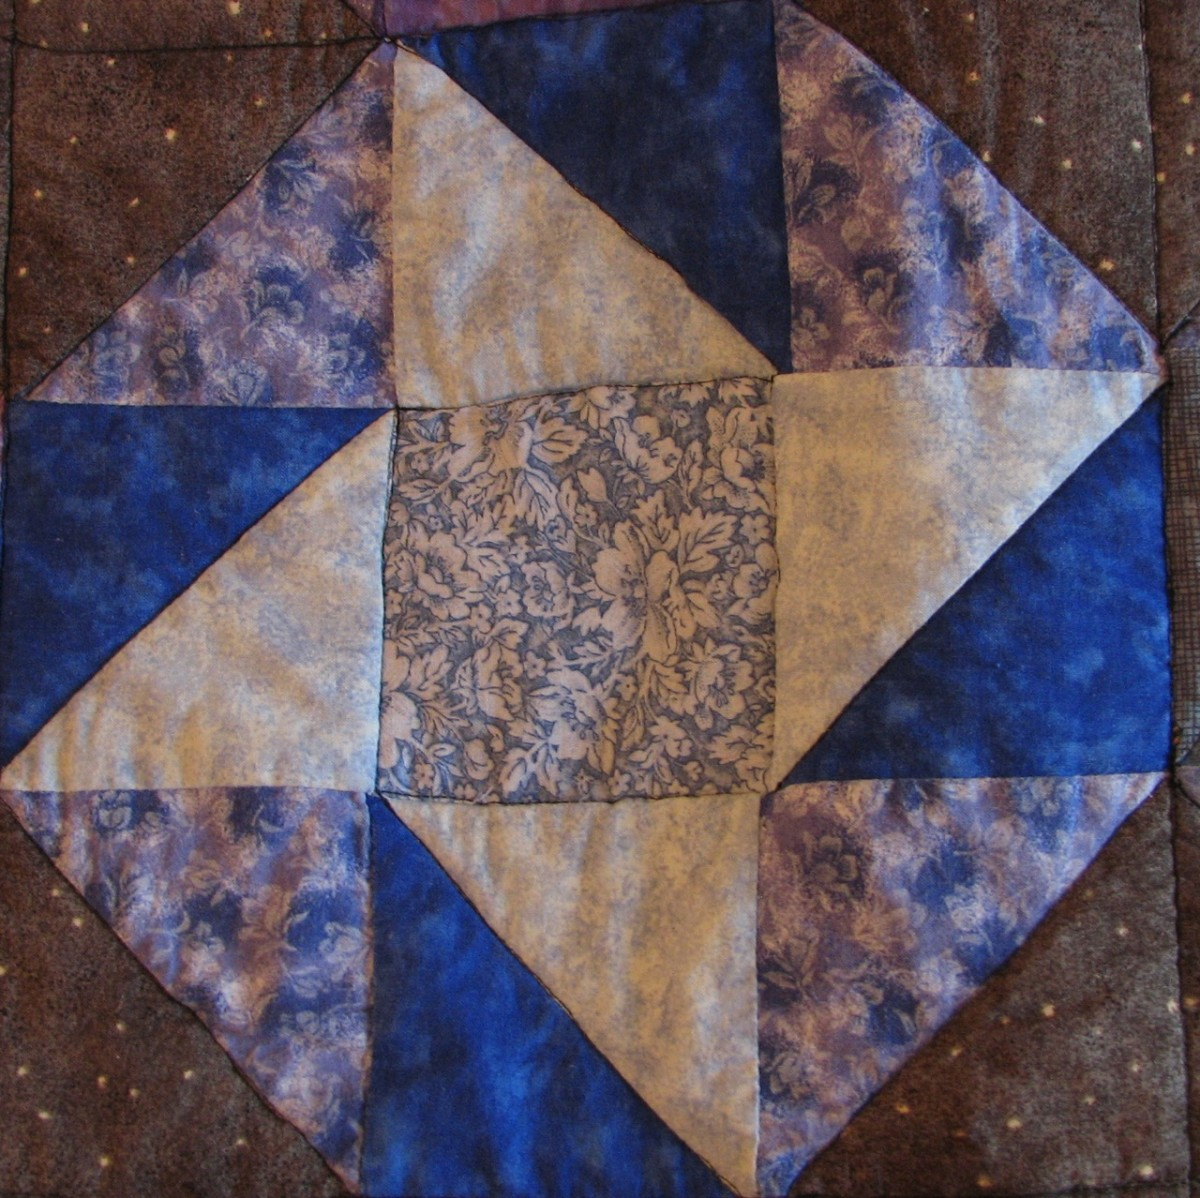 My quilt design - a quilted block.